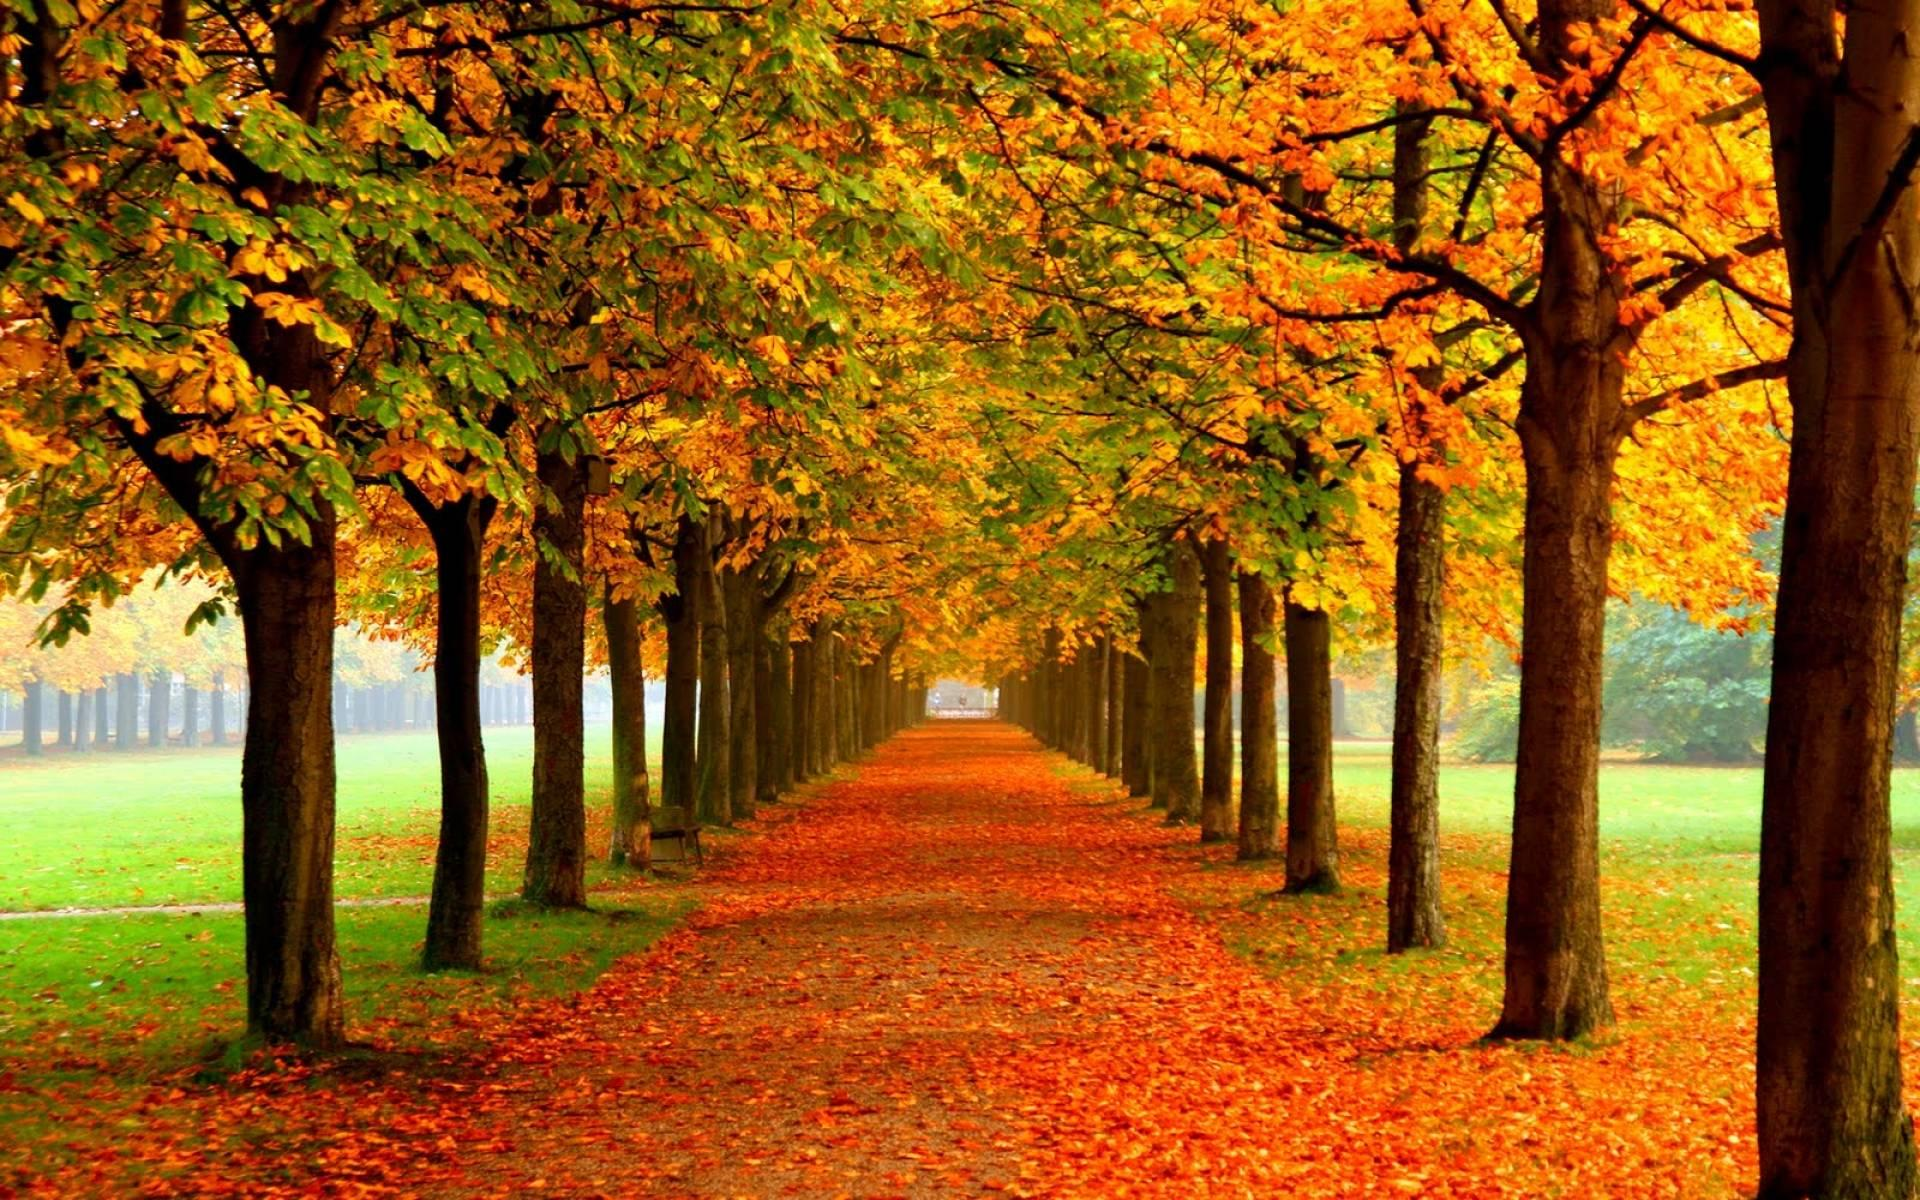 authum-leaf-widescreen-wallpaper-nice-background-f.jpg